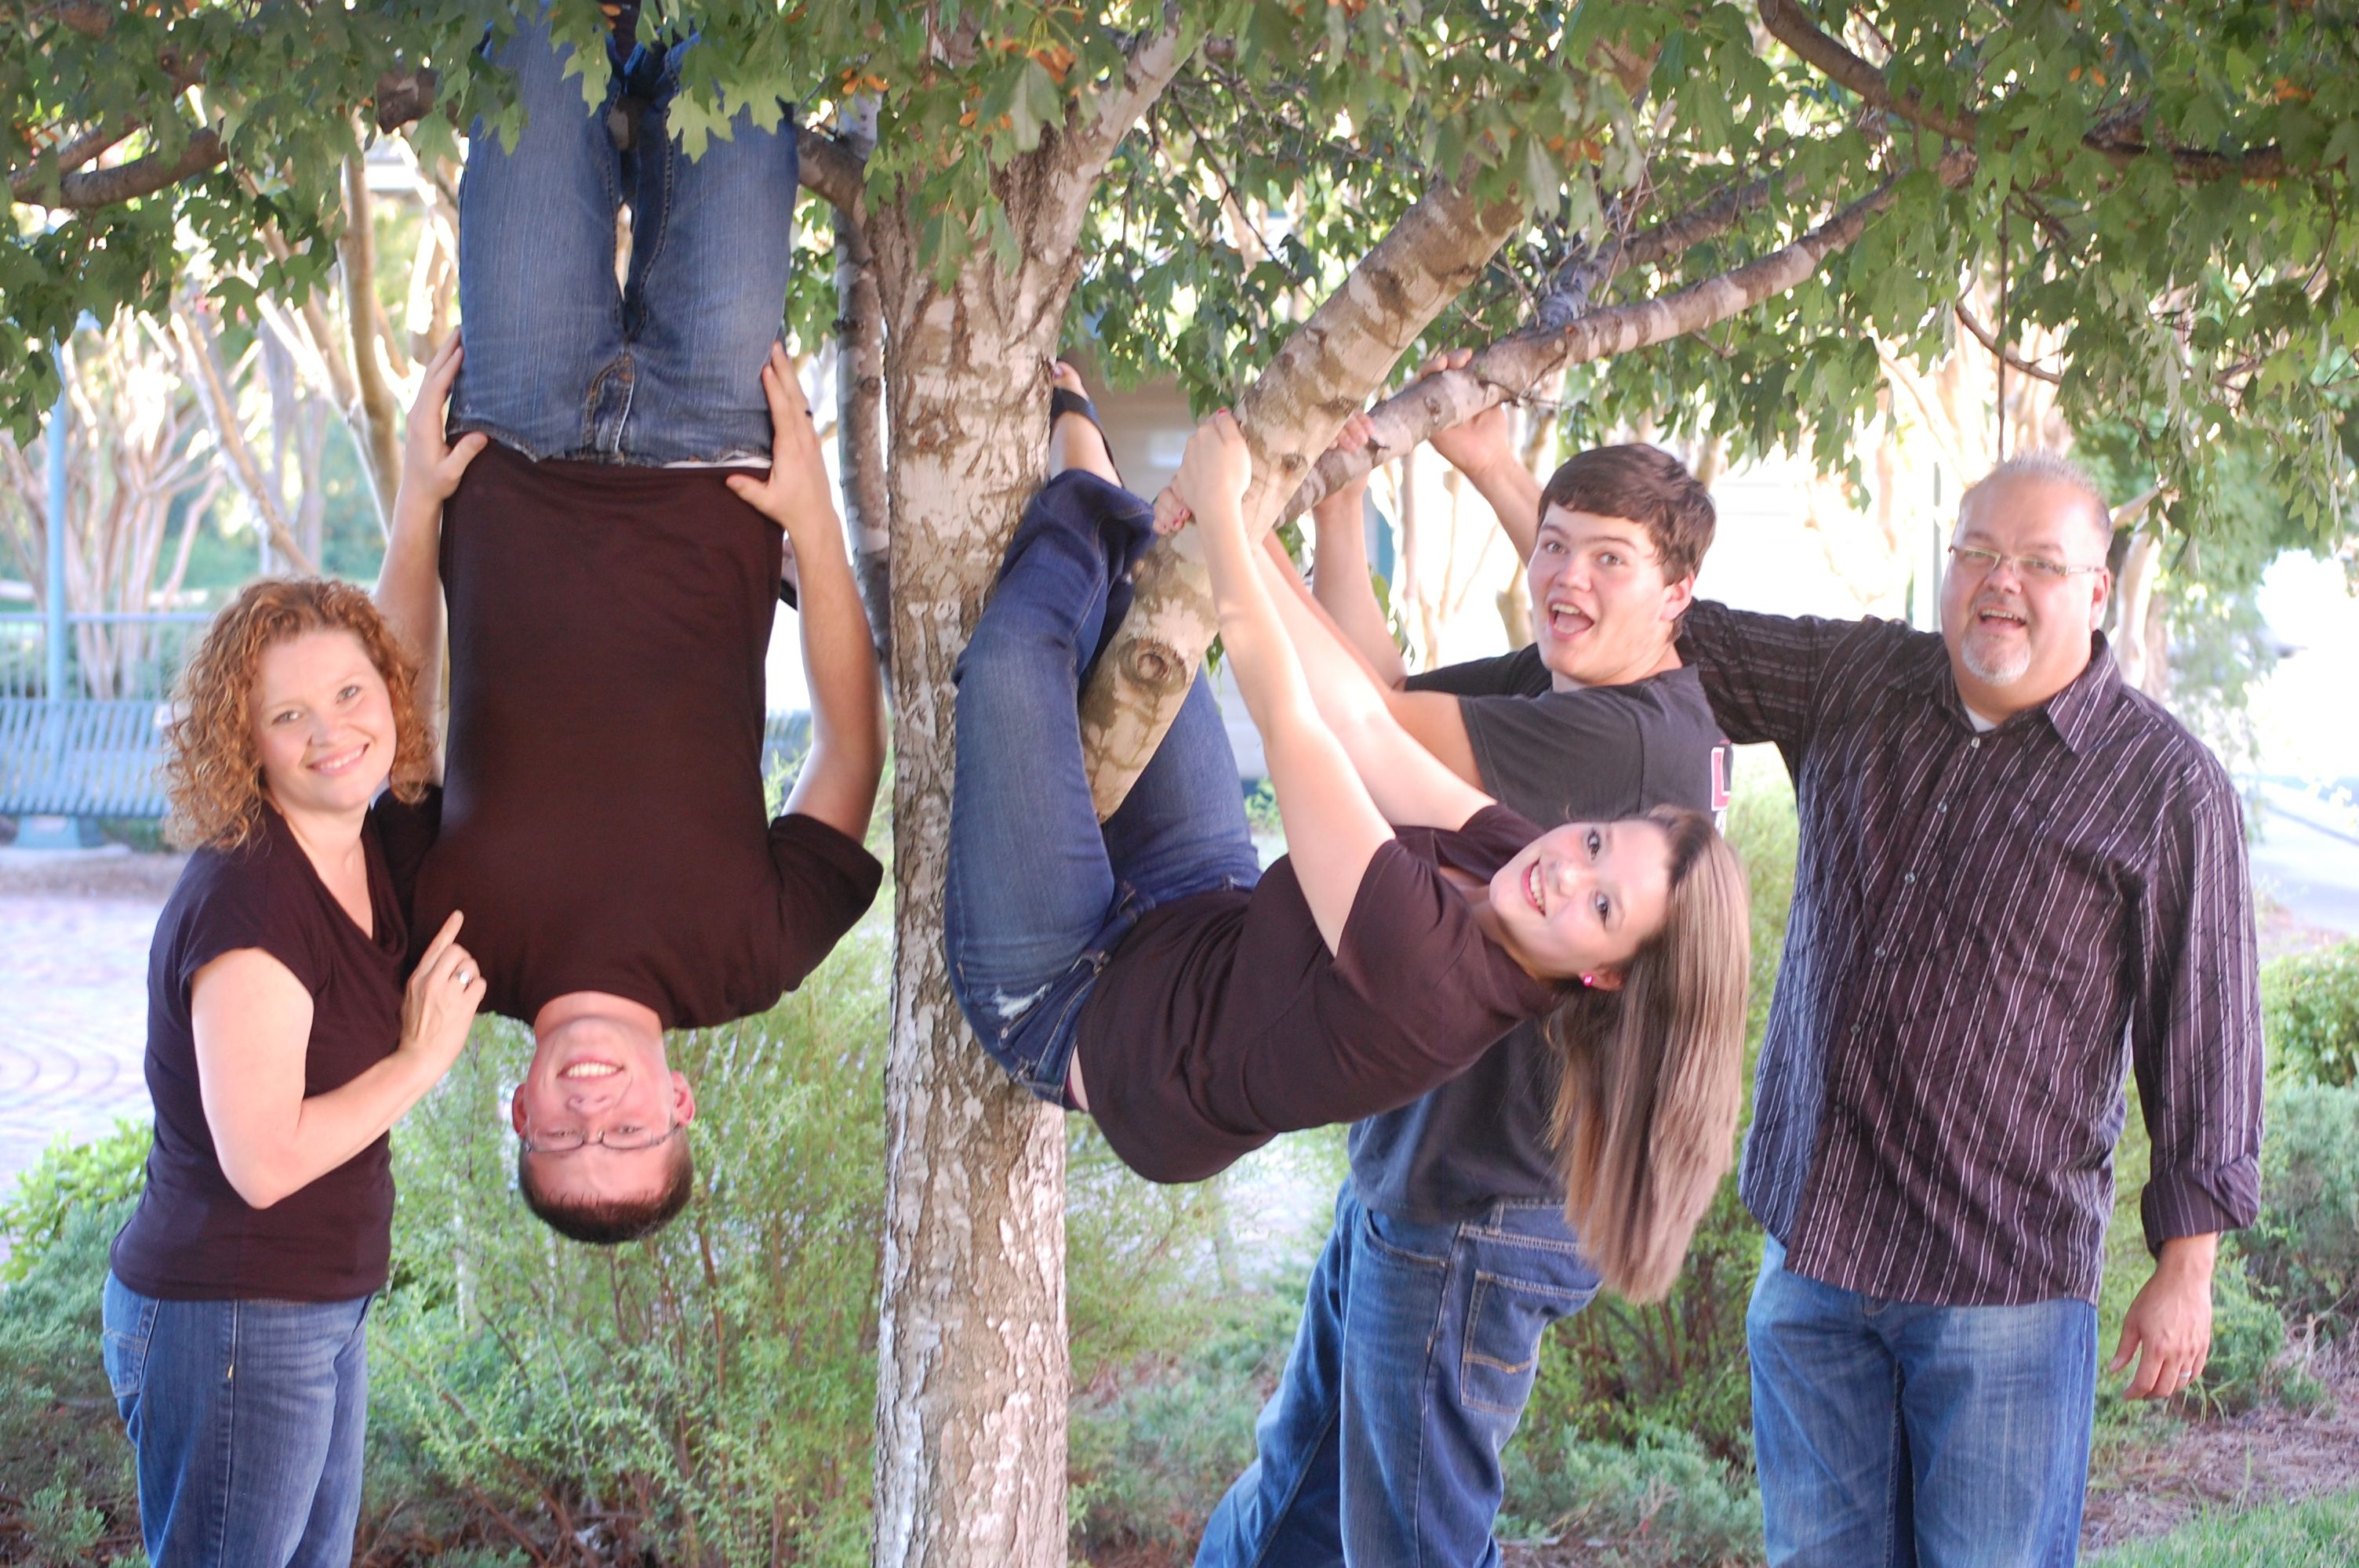 Family picture ideas with teenagers the for Family photo ideas